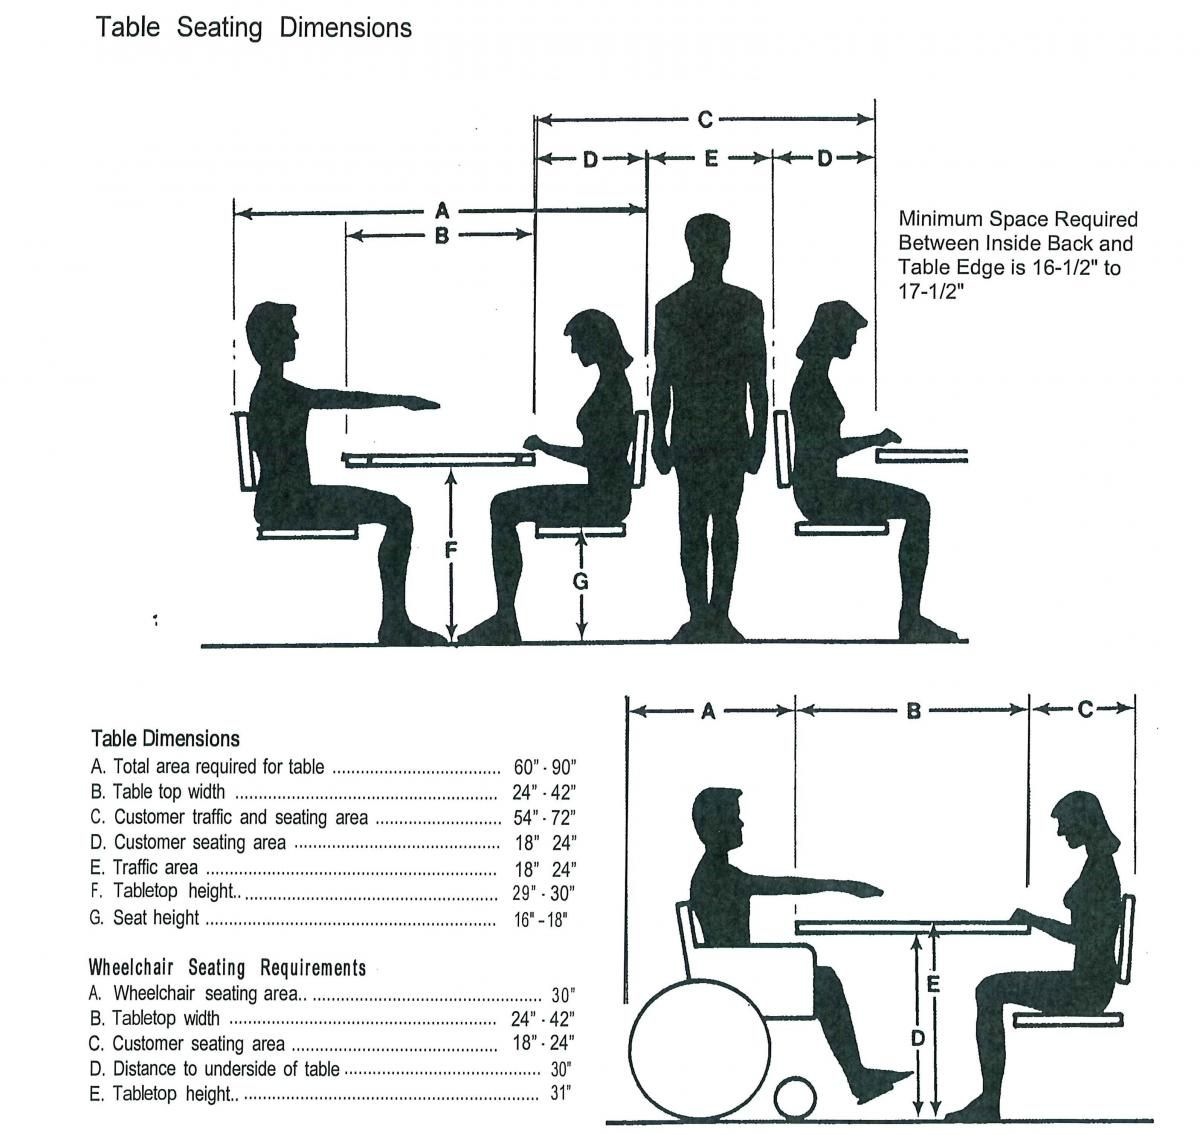 Table Seating Dimensions